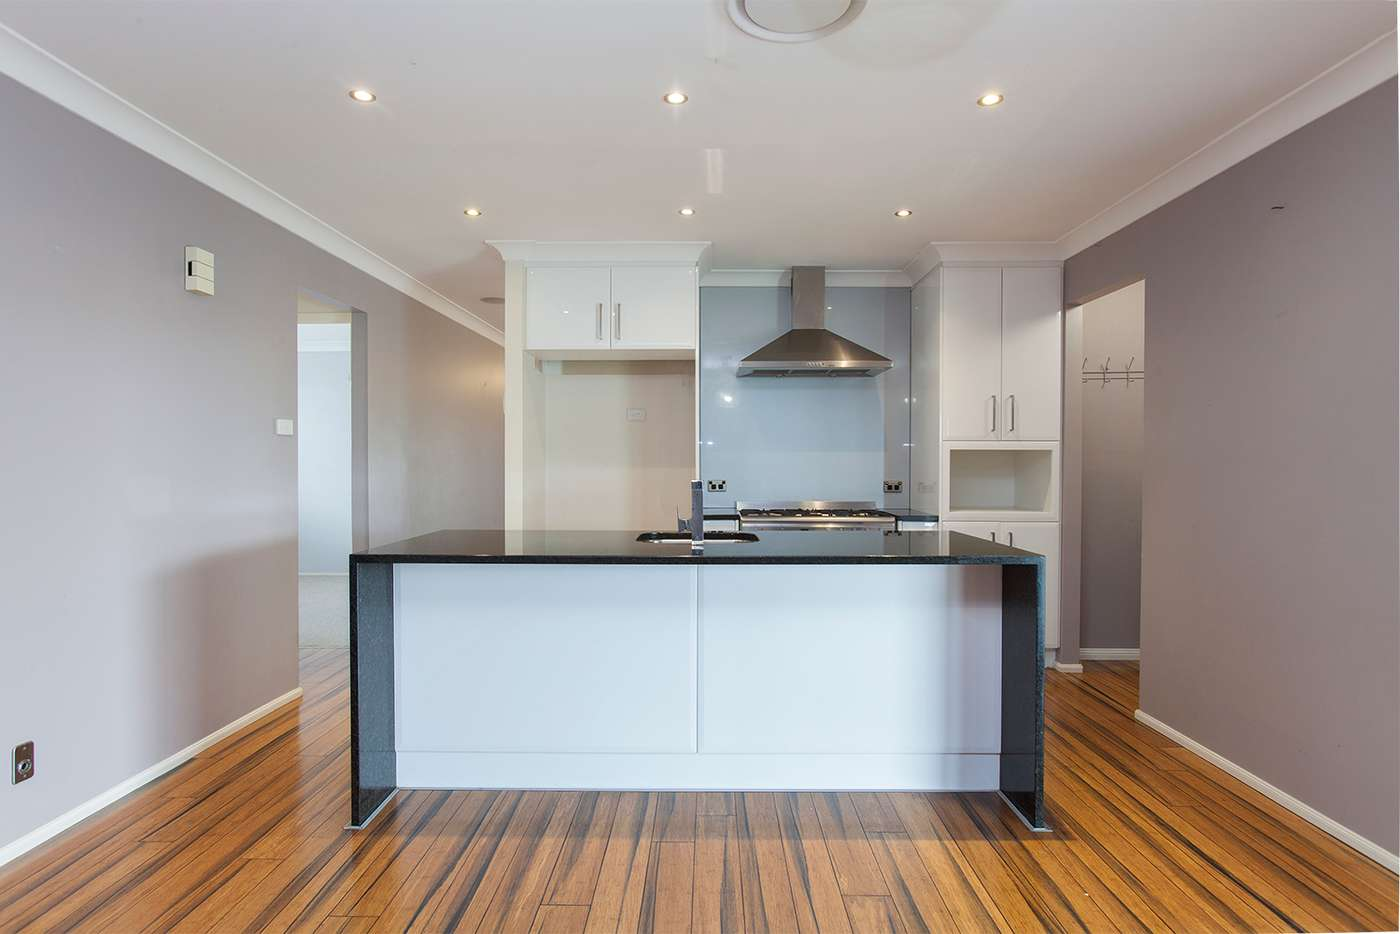 Seventh view of Homely house listing, 31 Lemonwood Circuit, Thornton NSW 2322